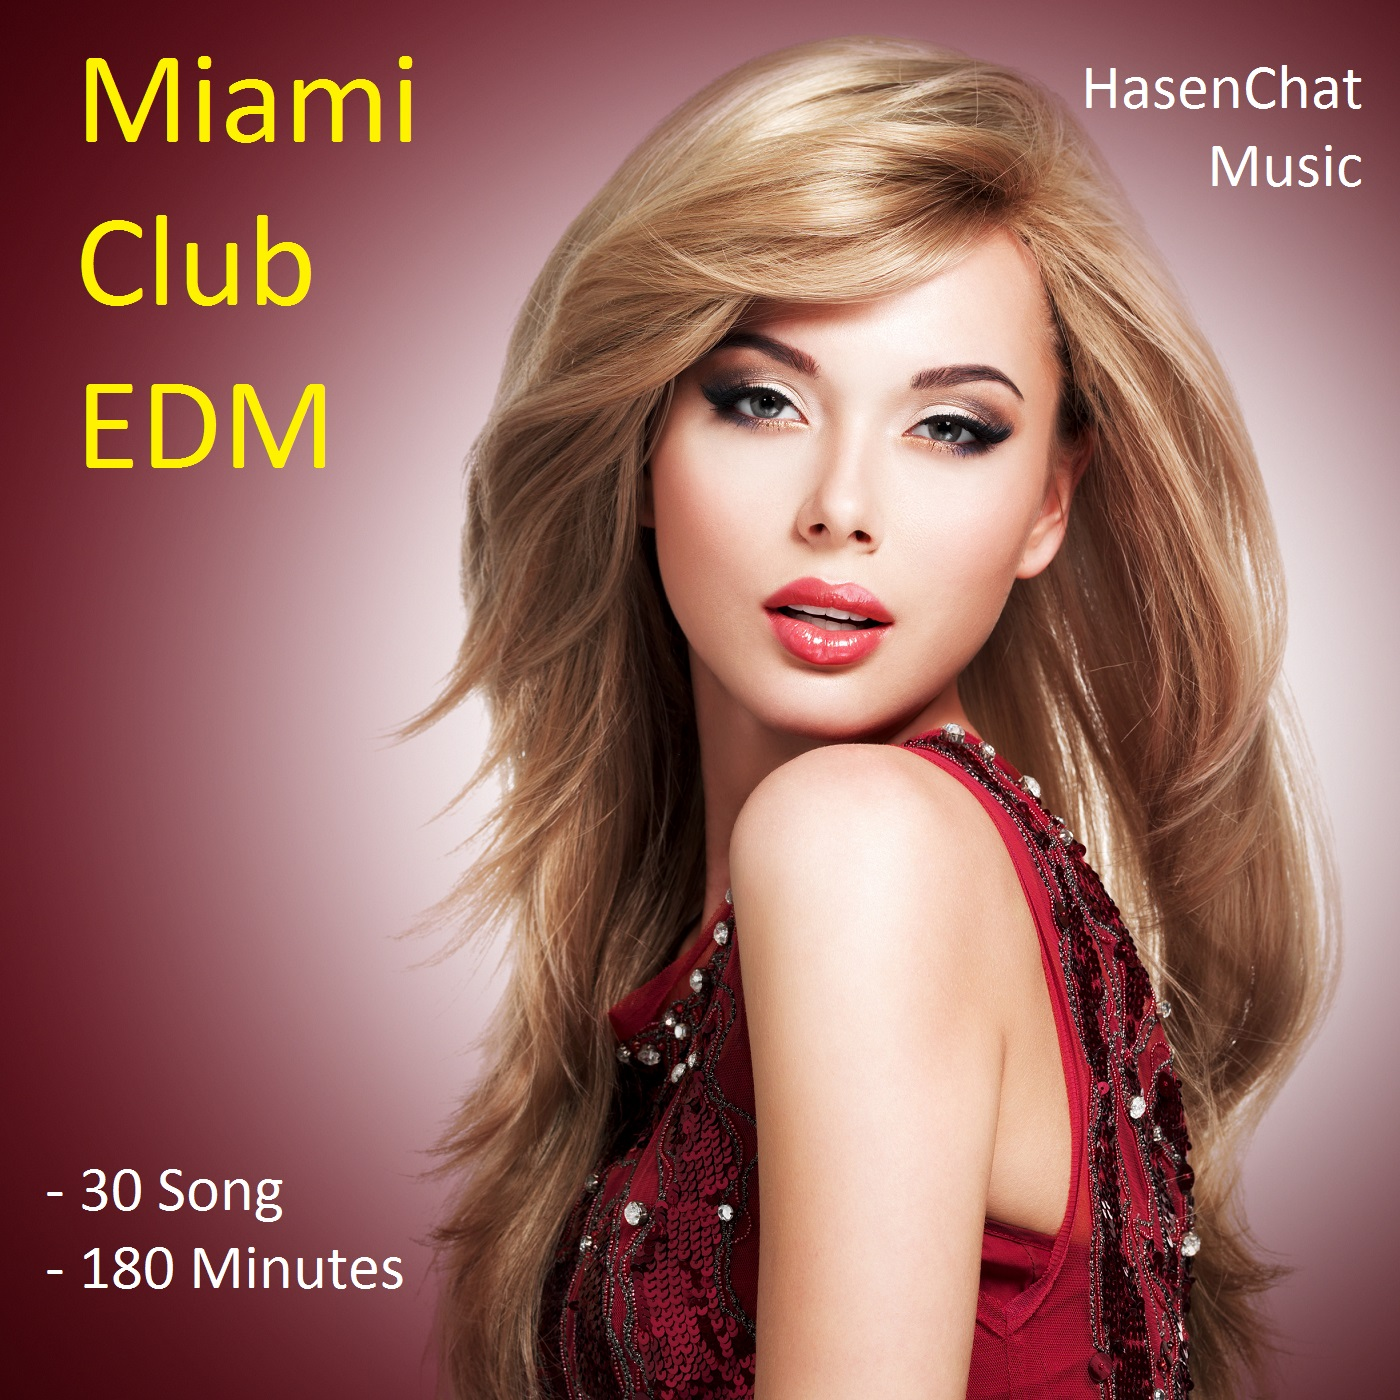 HasenChat Music - Miami Club EDM